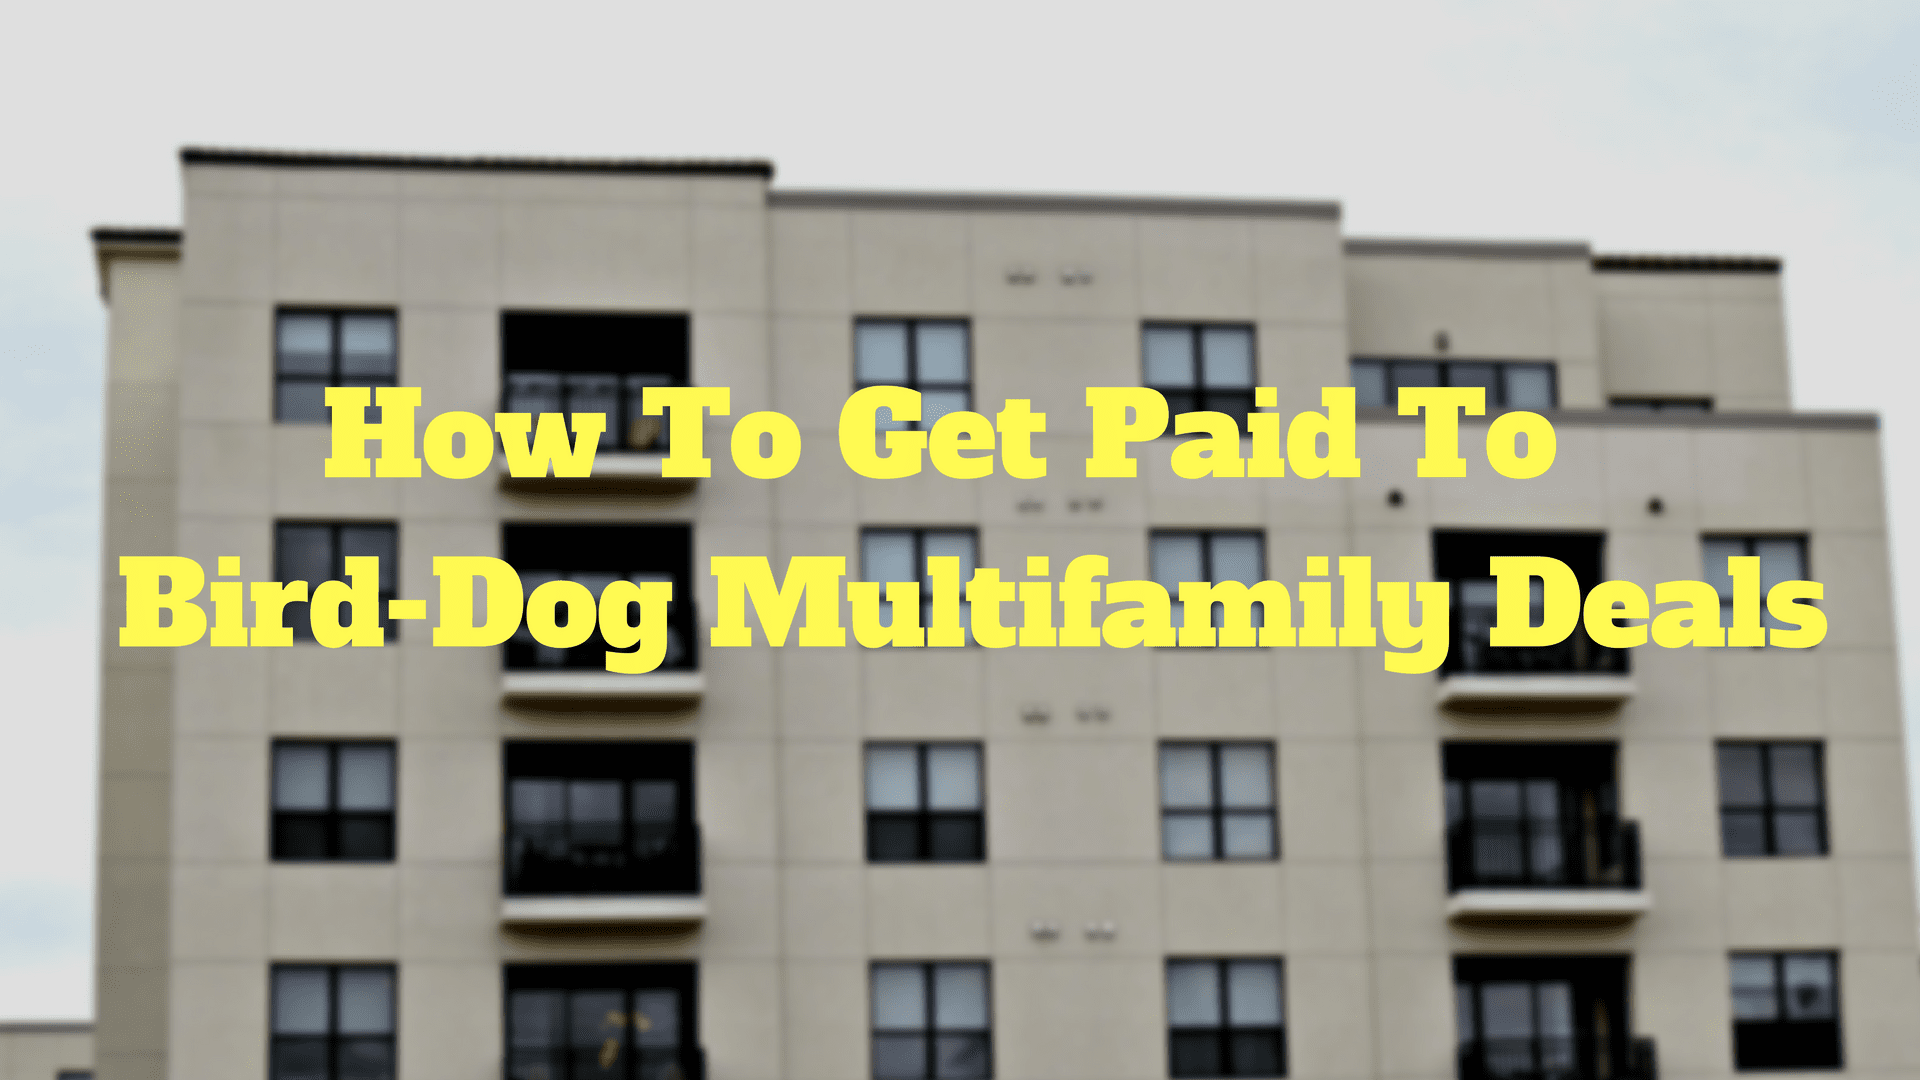 How To Get Paid To Bird-Dog Multifamily Deals